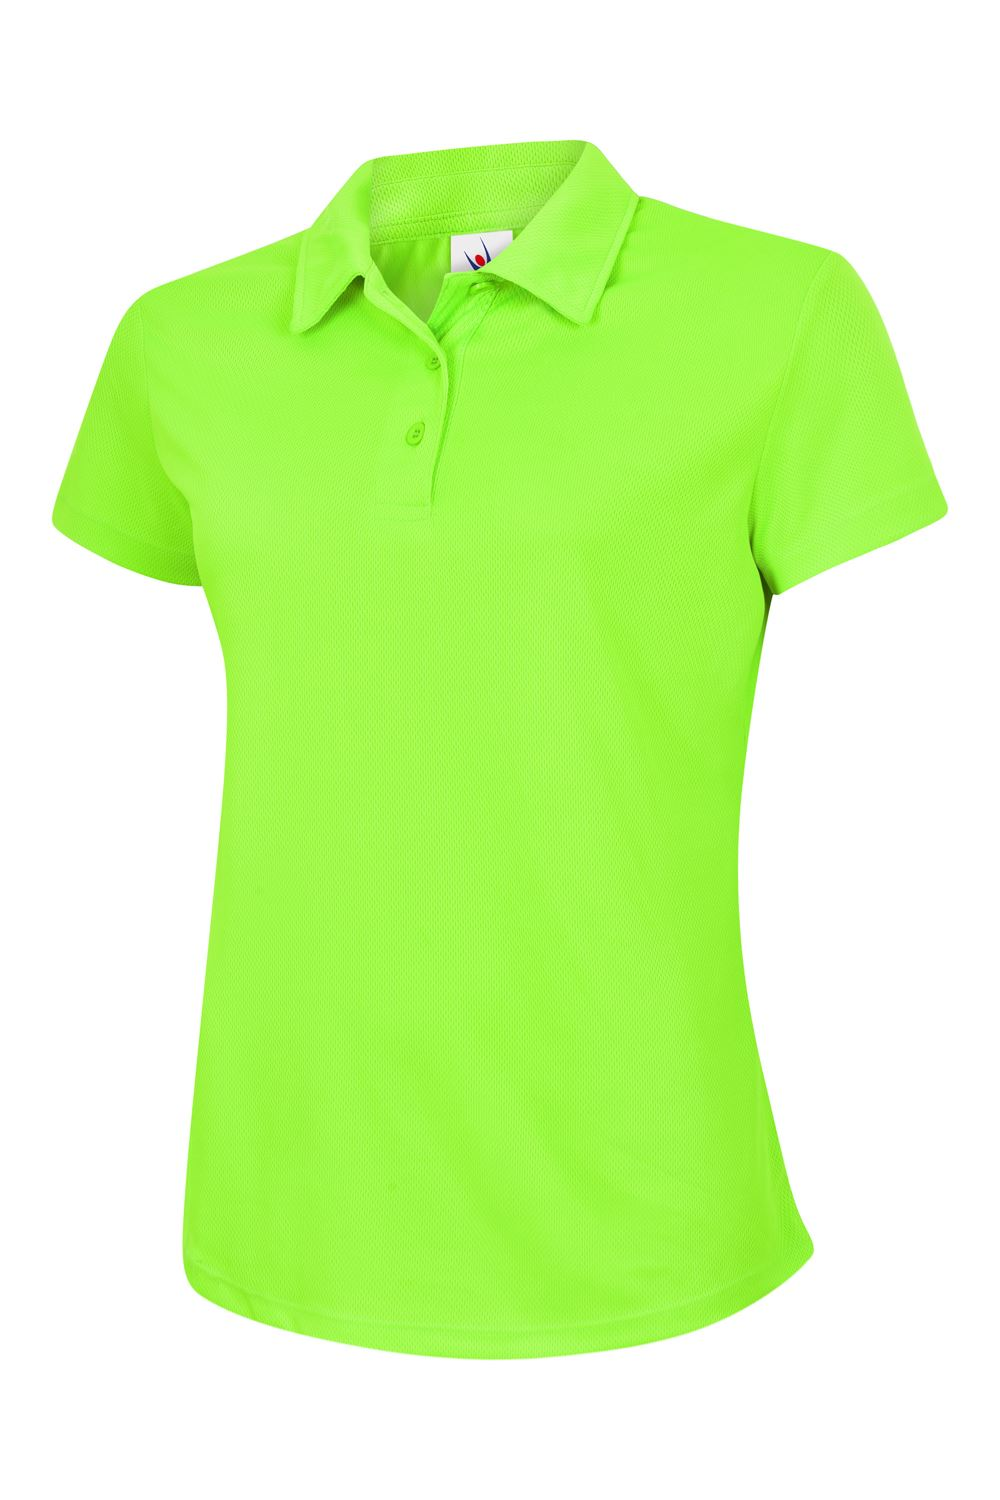 Uneek-Ultra-Cool-deportes-Transpirable-Camisa-Polo-senoras-ropa-de-trabajo-causa-Top-Camiseta